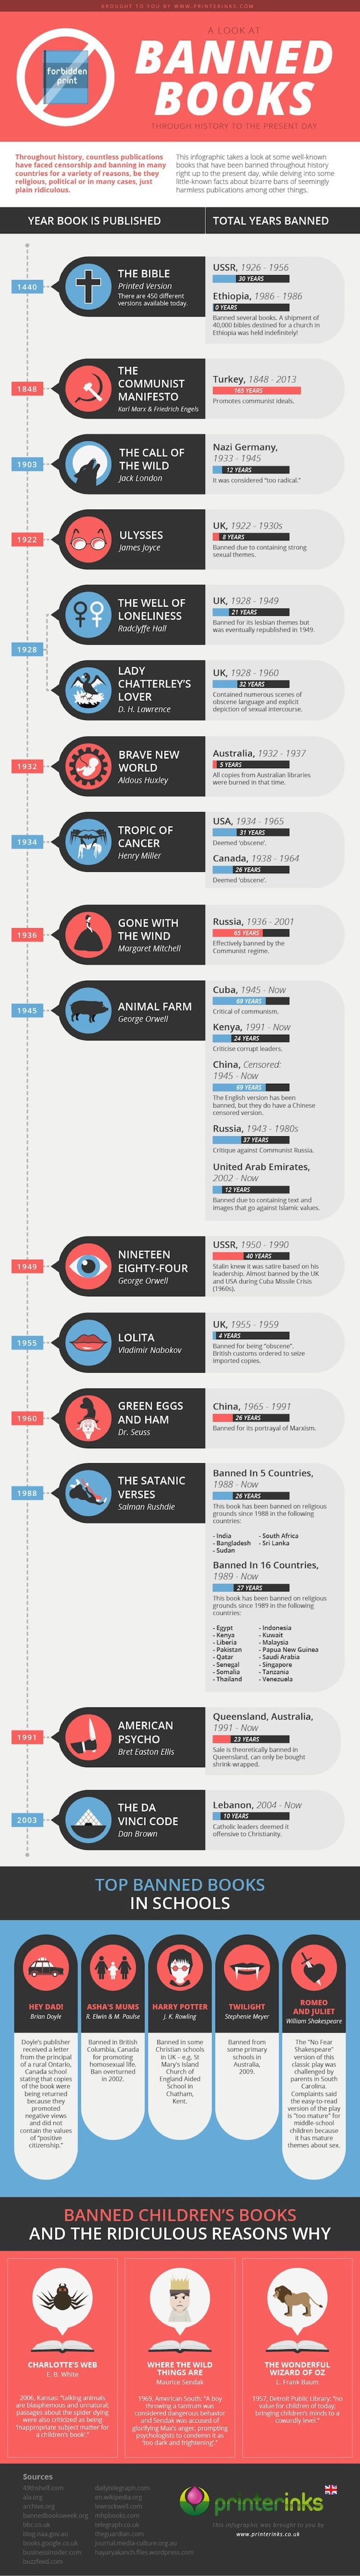 Banned books throughout history - infographic